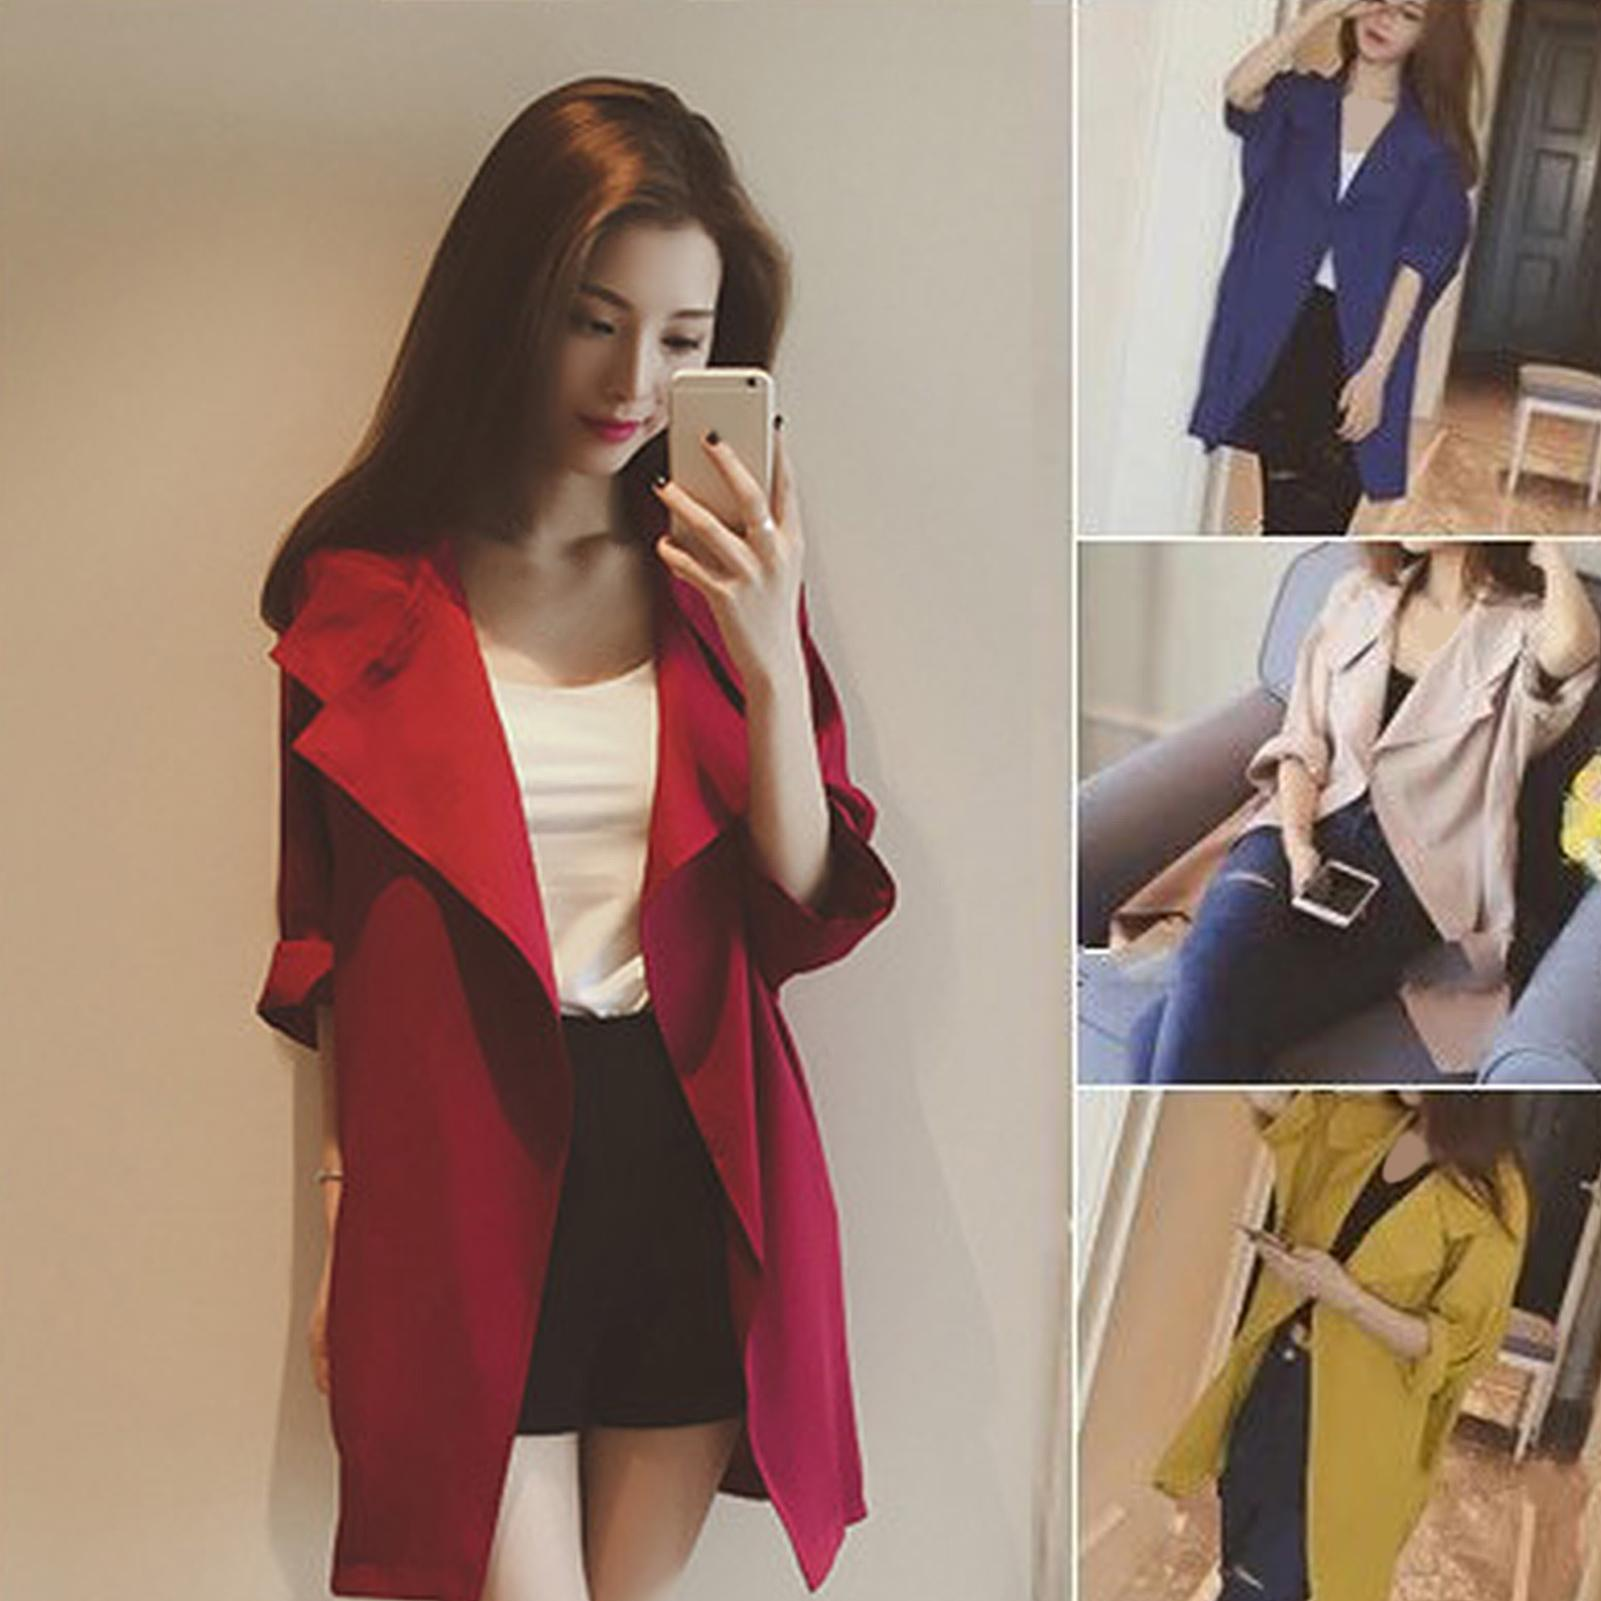 Women Loose Solid Color Large Lapel Three-quarter Sleeve Trench Coat Cardigan